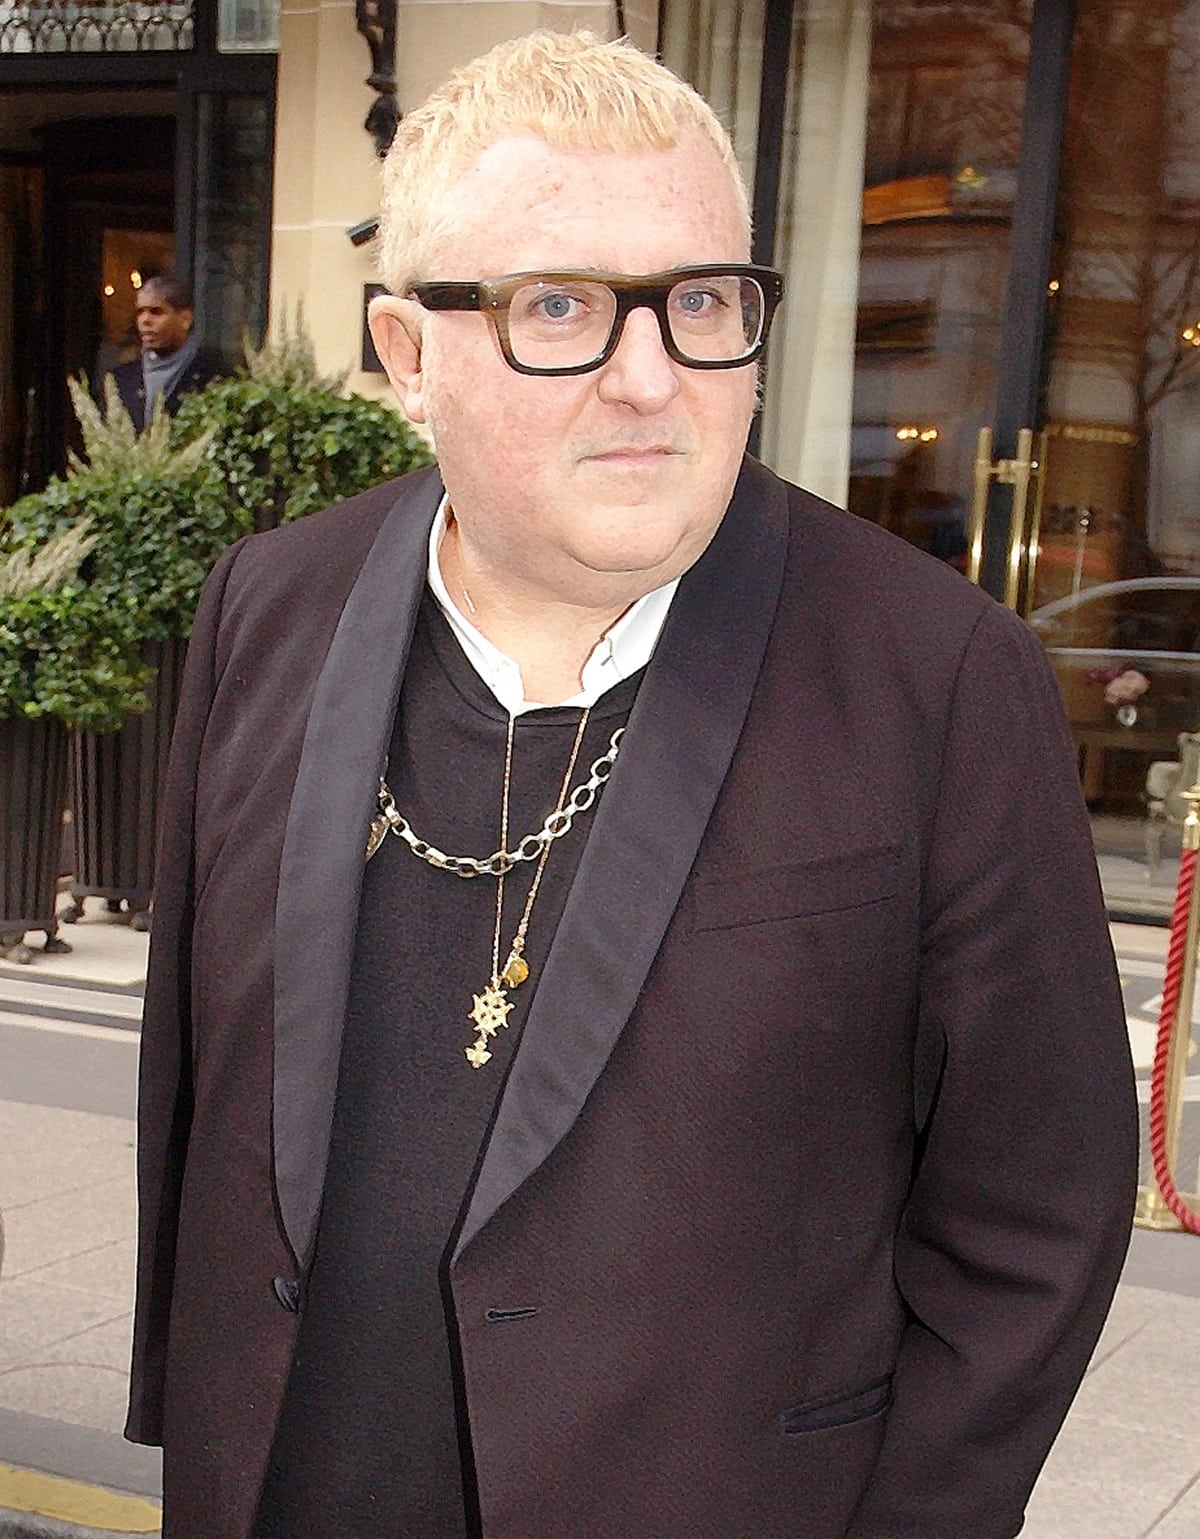 Alber Elbaz worked at Yves Saint Laurent from 1998 before starting a 14-year tenure as creative director at Lanvin in 2001